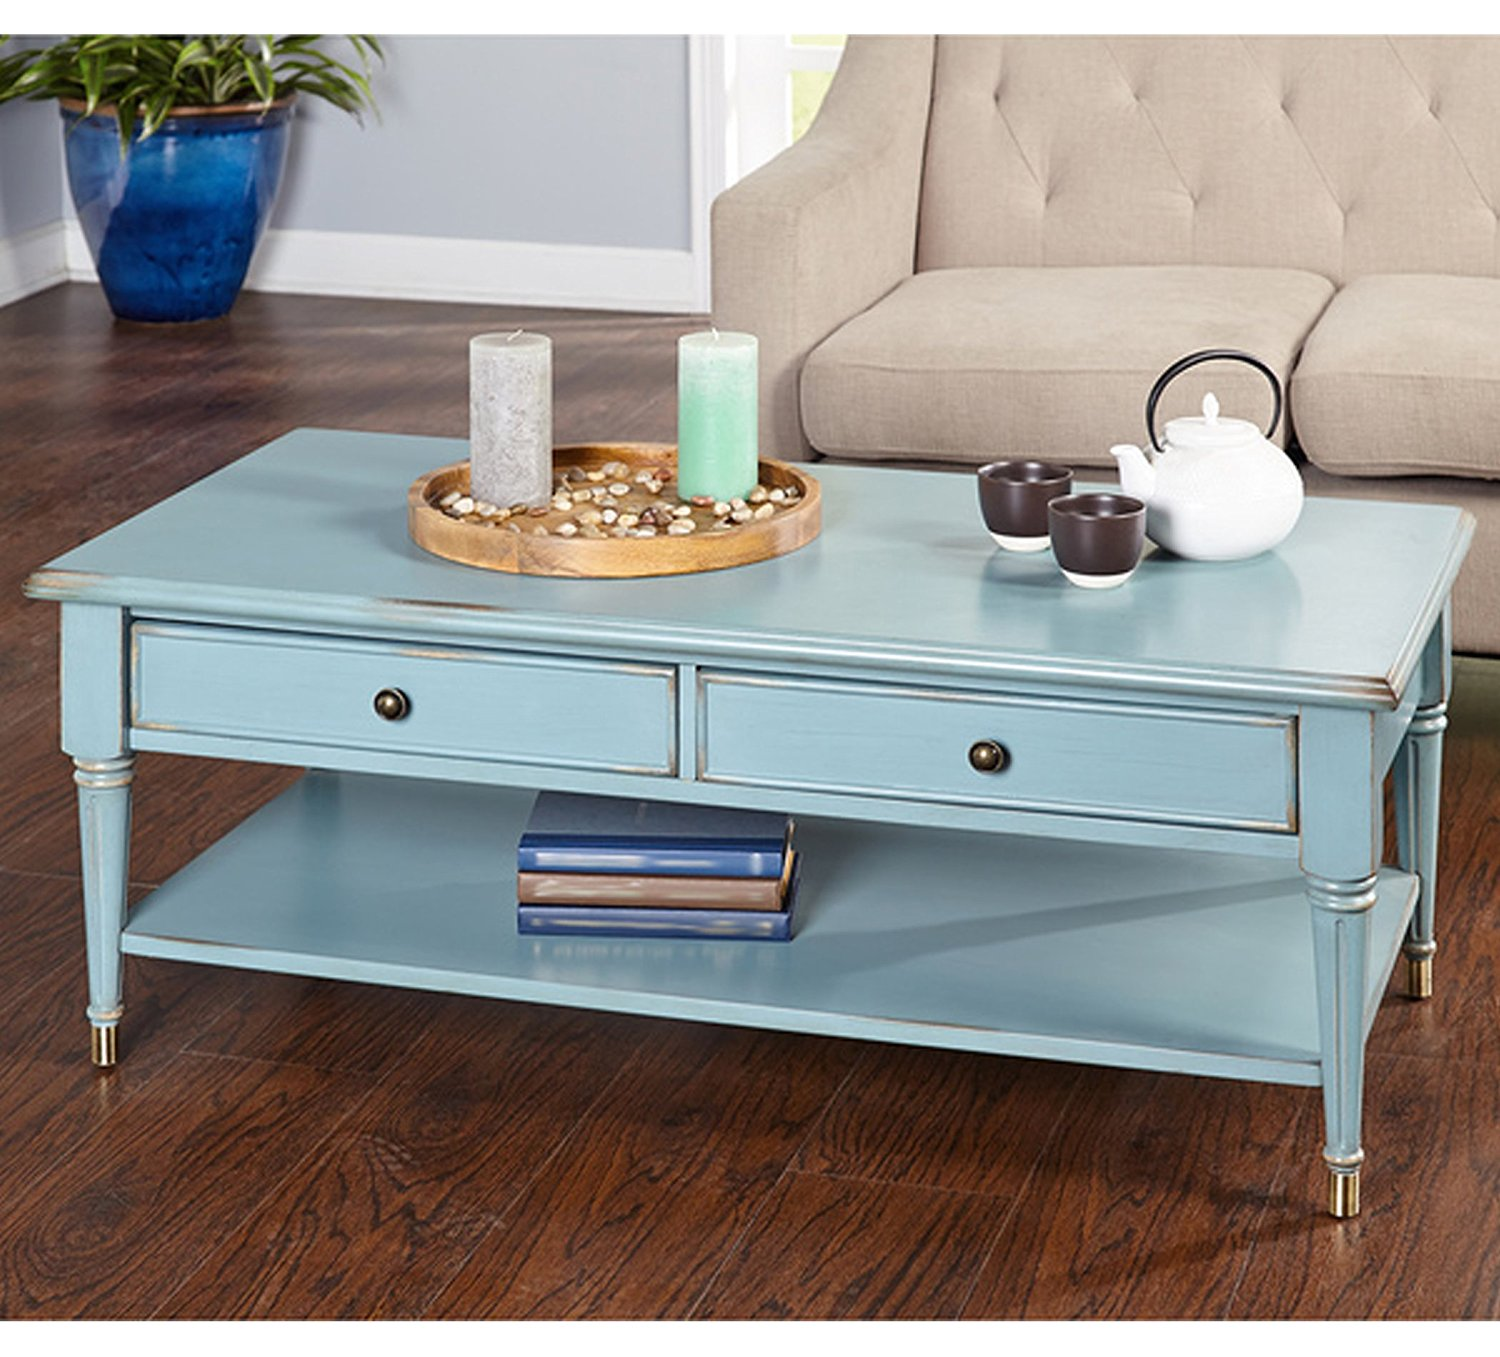 furniture antique distressed blue brass sideboards drawer accent table farmhouse coffee living room made solid wood legs with finish brackets thomasville end tables swing arm lamp